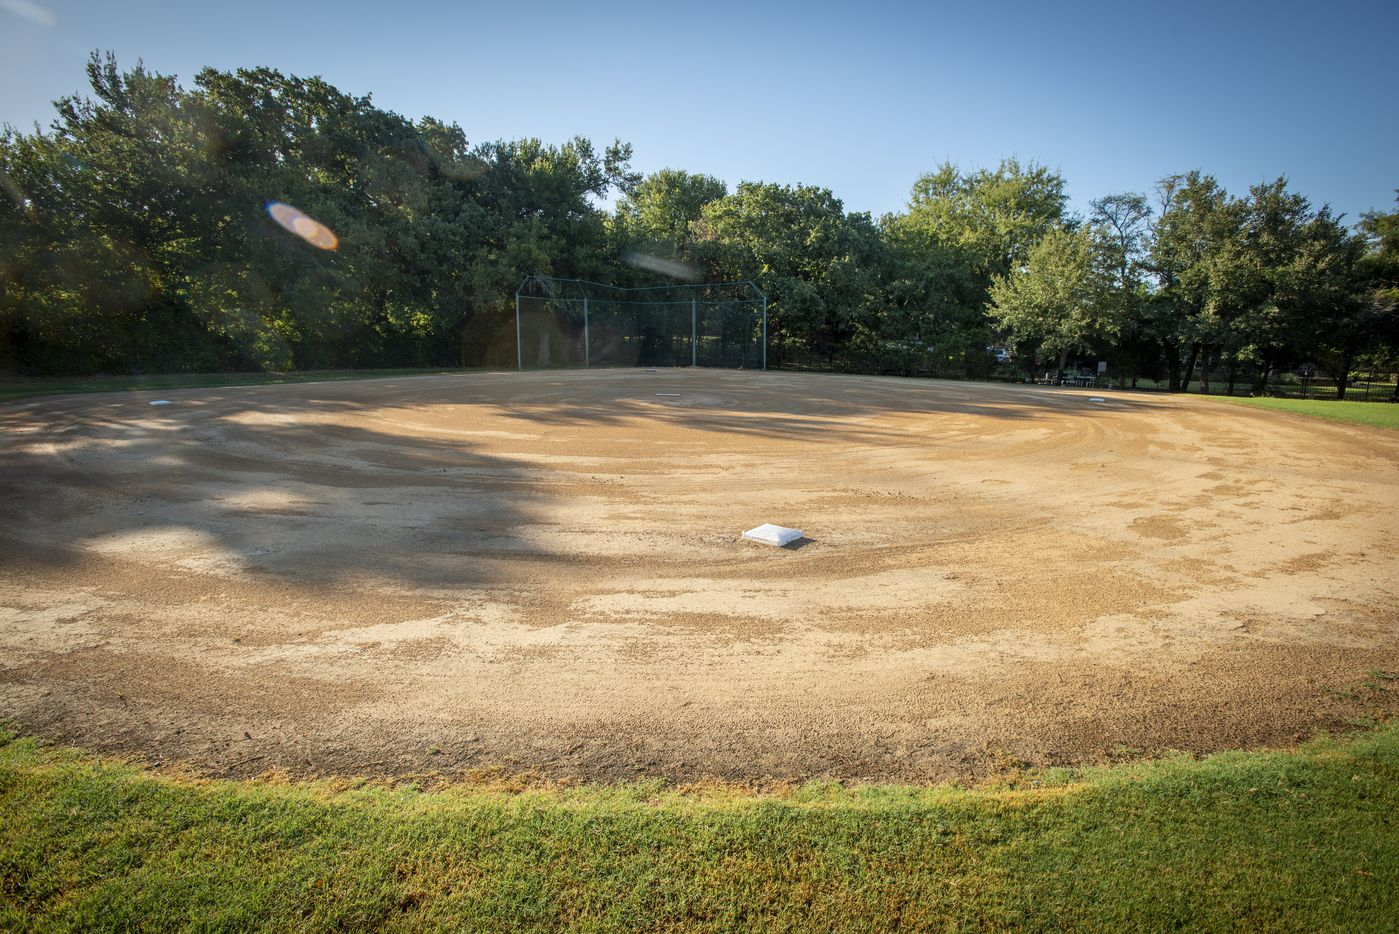 Baseball field at 5101 Kensington Ct., in Flower Mound, Texas on August 19, 2020. (Robert W. Hart/Special Contributor)